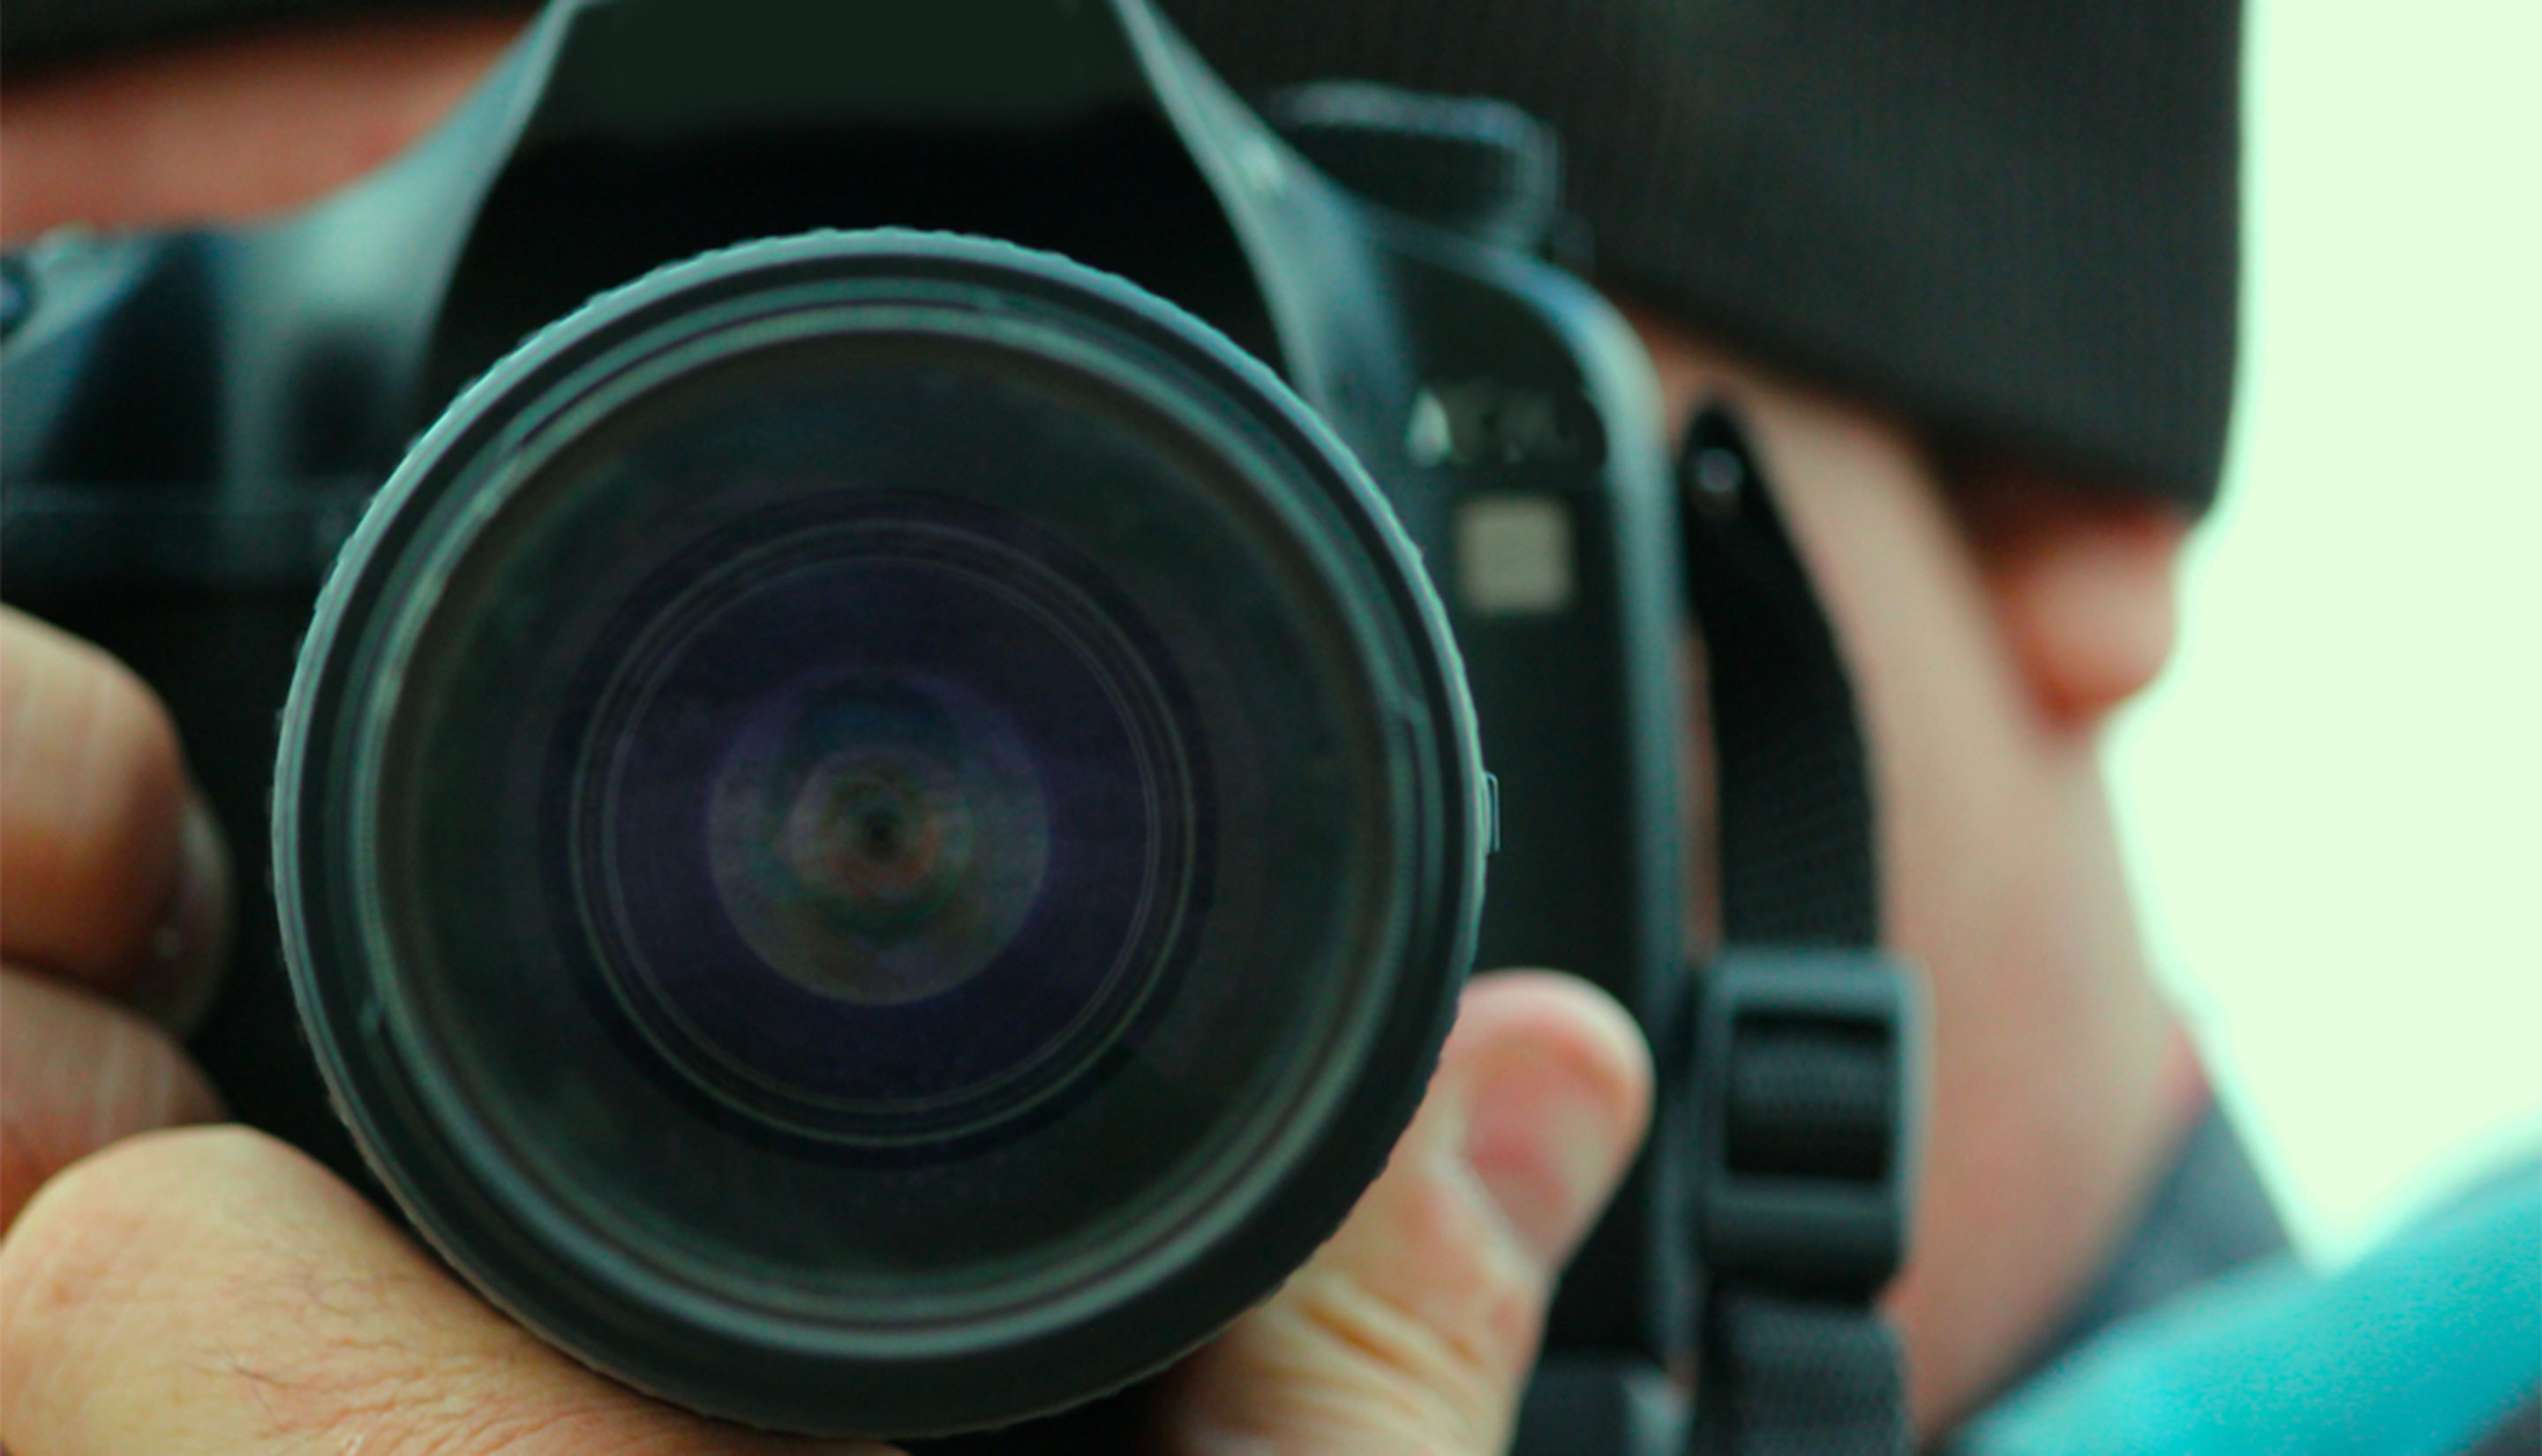 FCPX Essentials: How to Import and Organize Your Footage